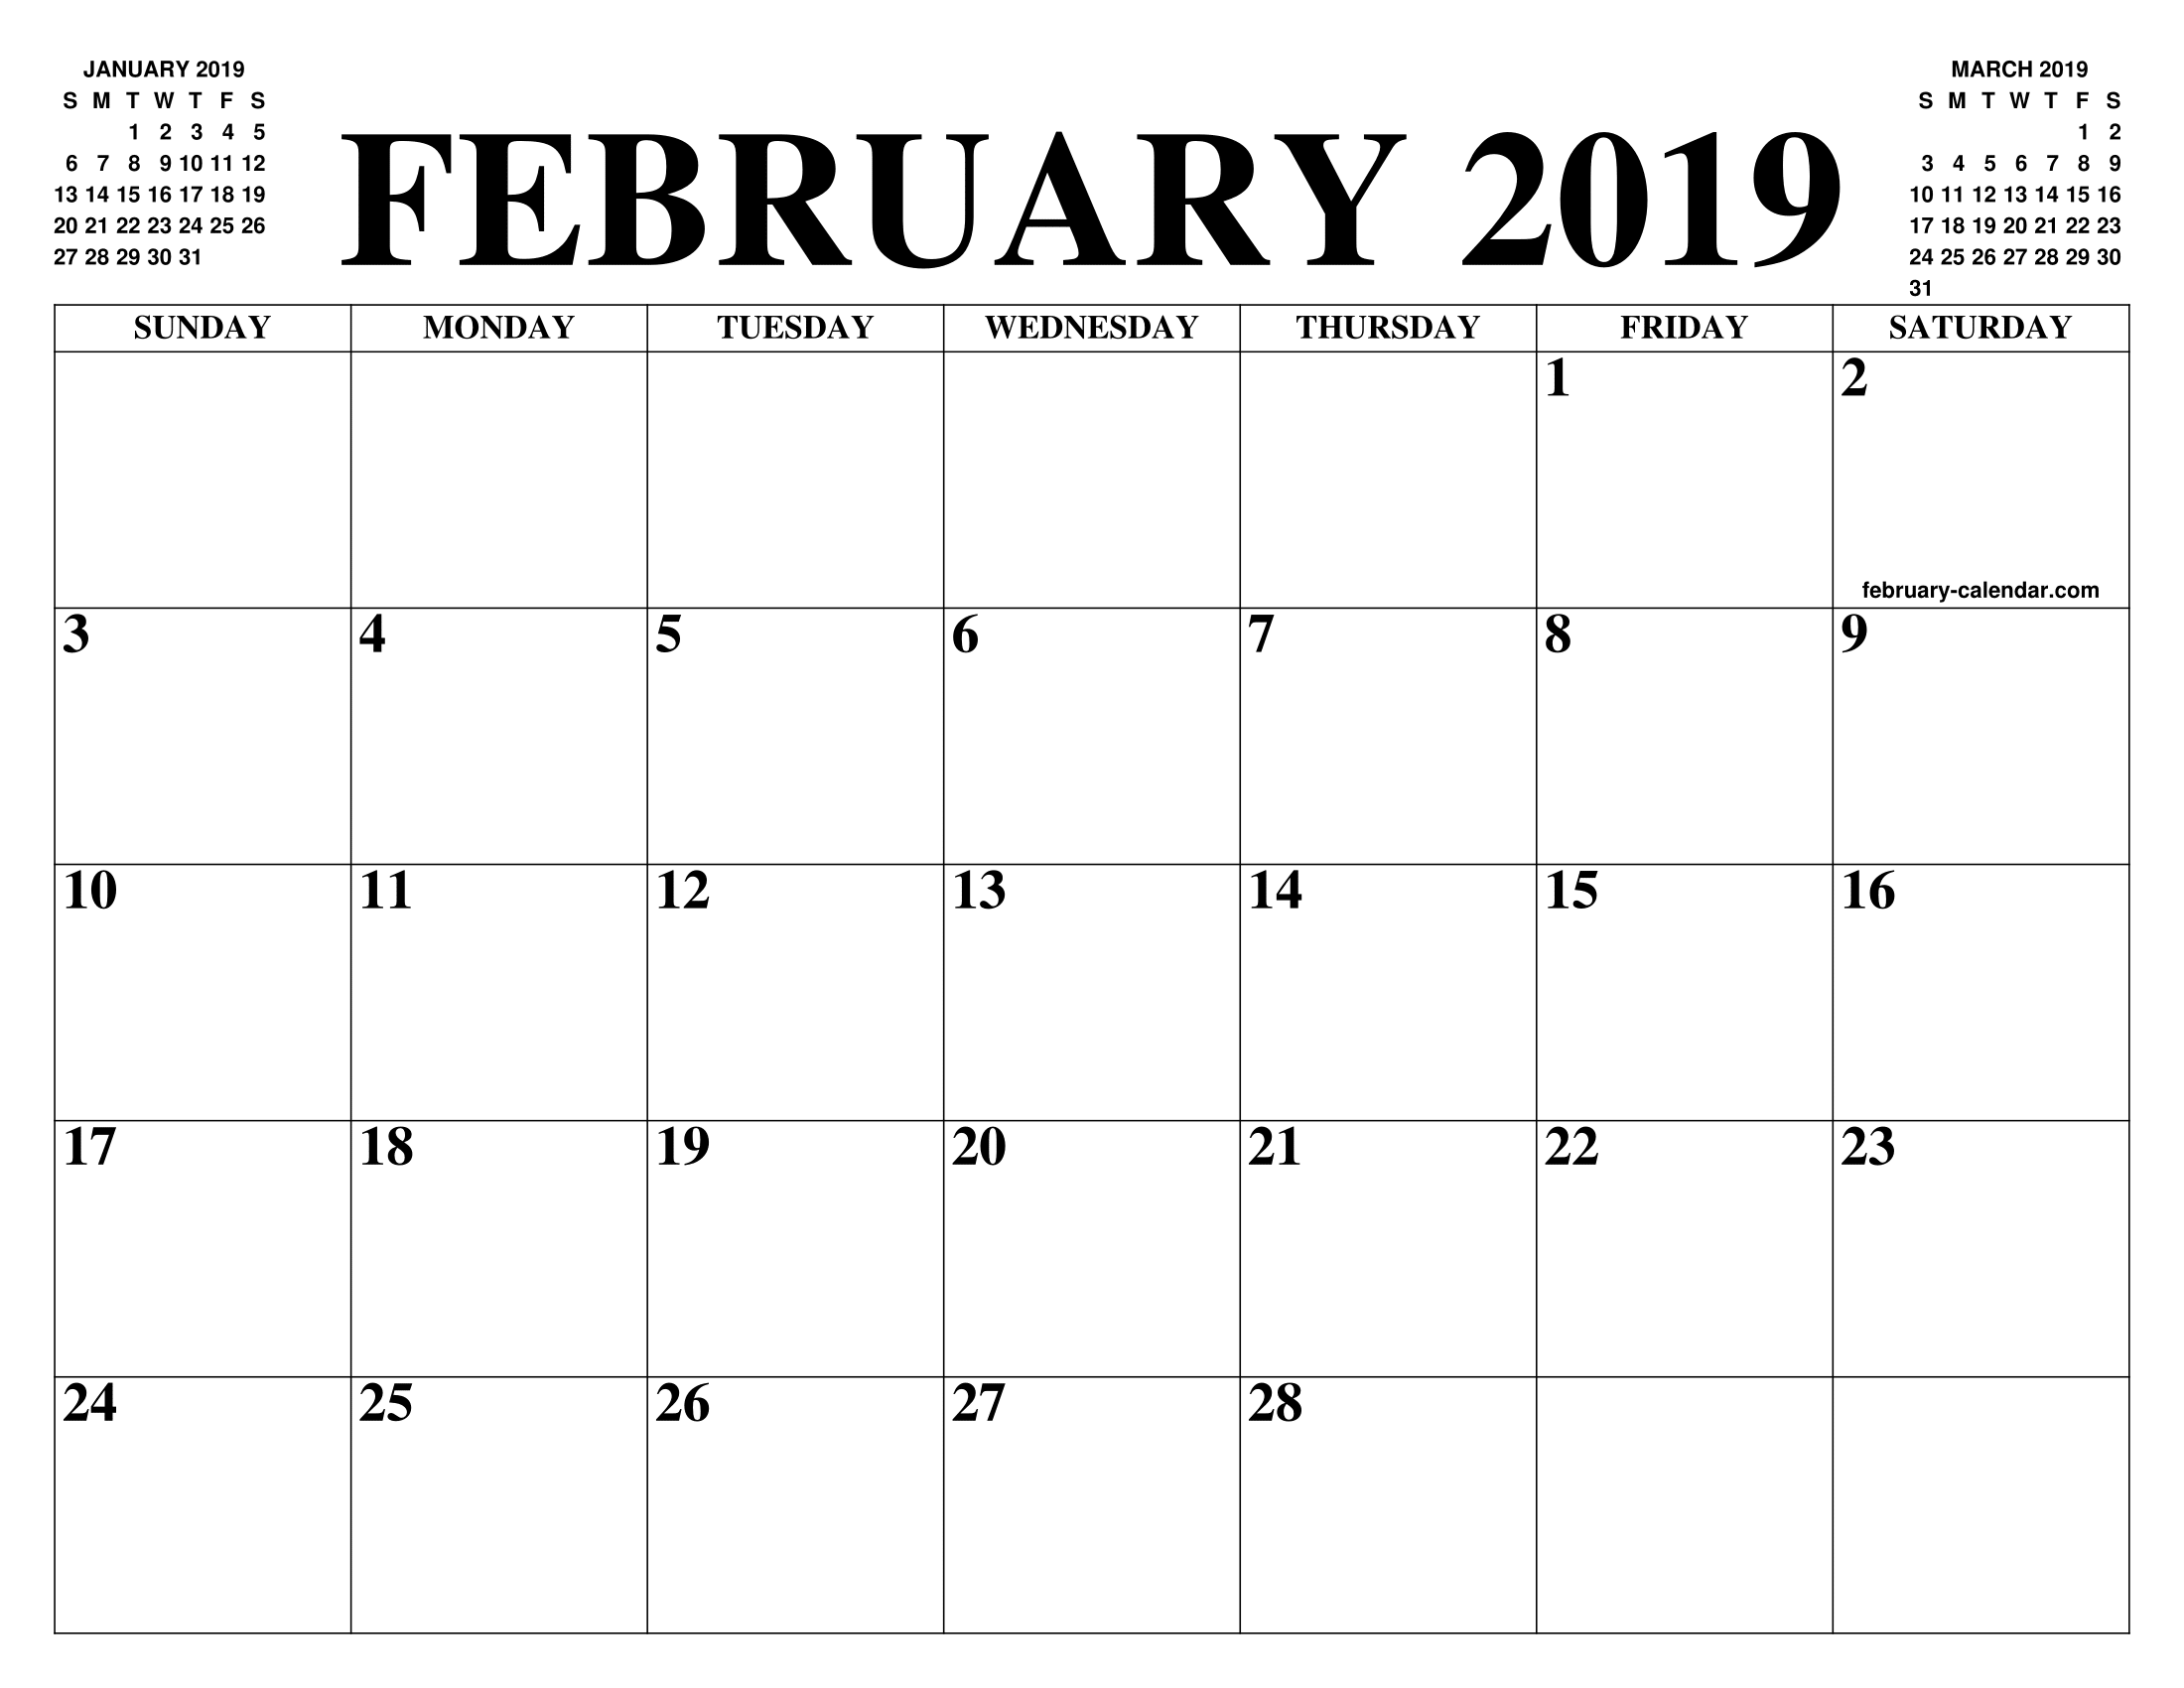 February Calendar 2019.February 2019 2020 Calendar Of The Month Free Printable February